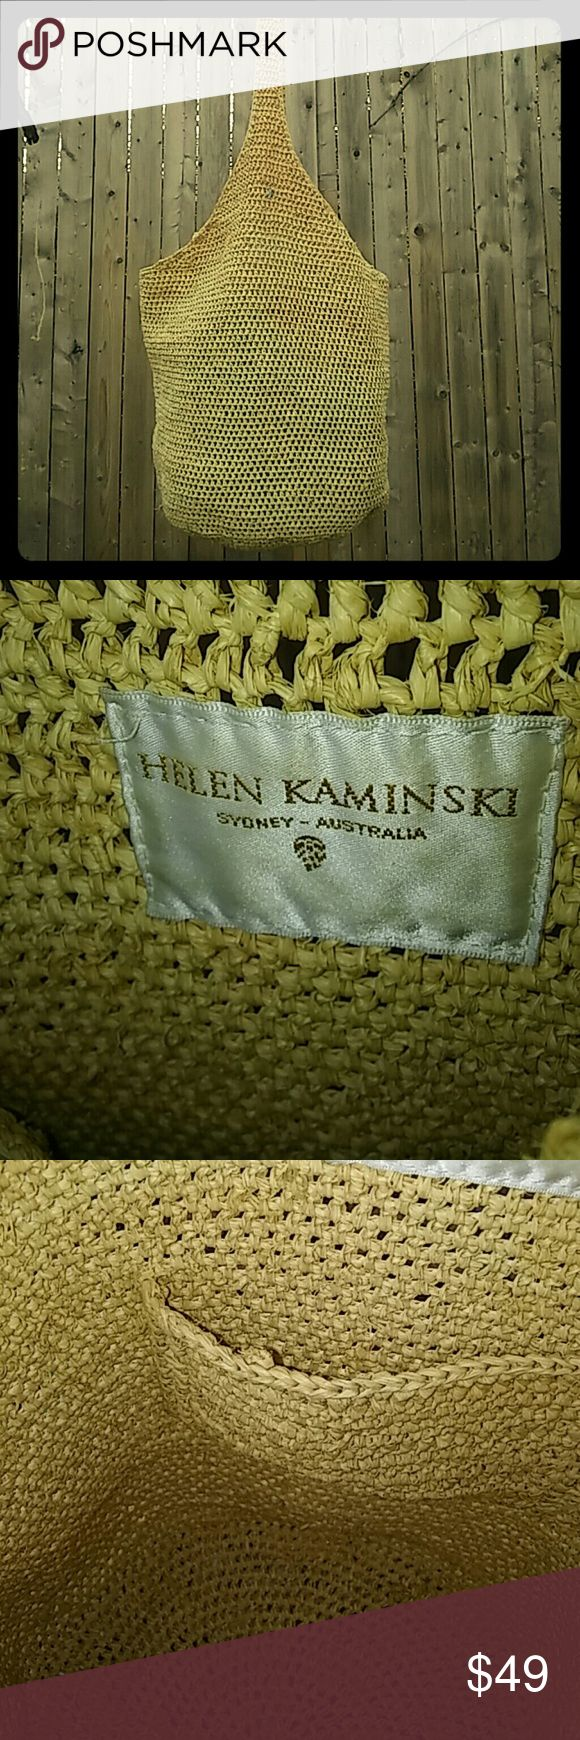 Helen Kaminski classic raffia Carillo basket bag A Helen Kaminski staple! The Carillo basket bag is currently for sale on her website for $295. Listed as a 'classic sac' made with the Tiki stitch. One inside pocket. It is unlined.  Color is natural. In very good condition. There looks to be a minor repair at the top of the shoulder strap as seen in above picture. Next day shipping. Helen Kaminski Bags Totes